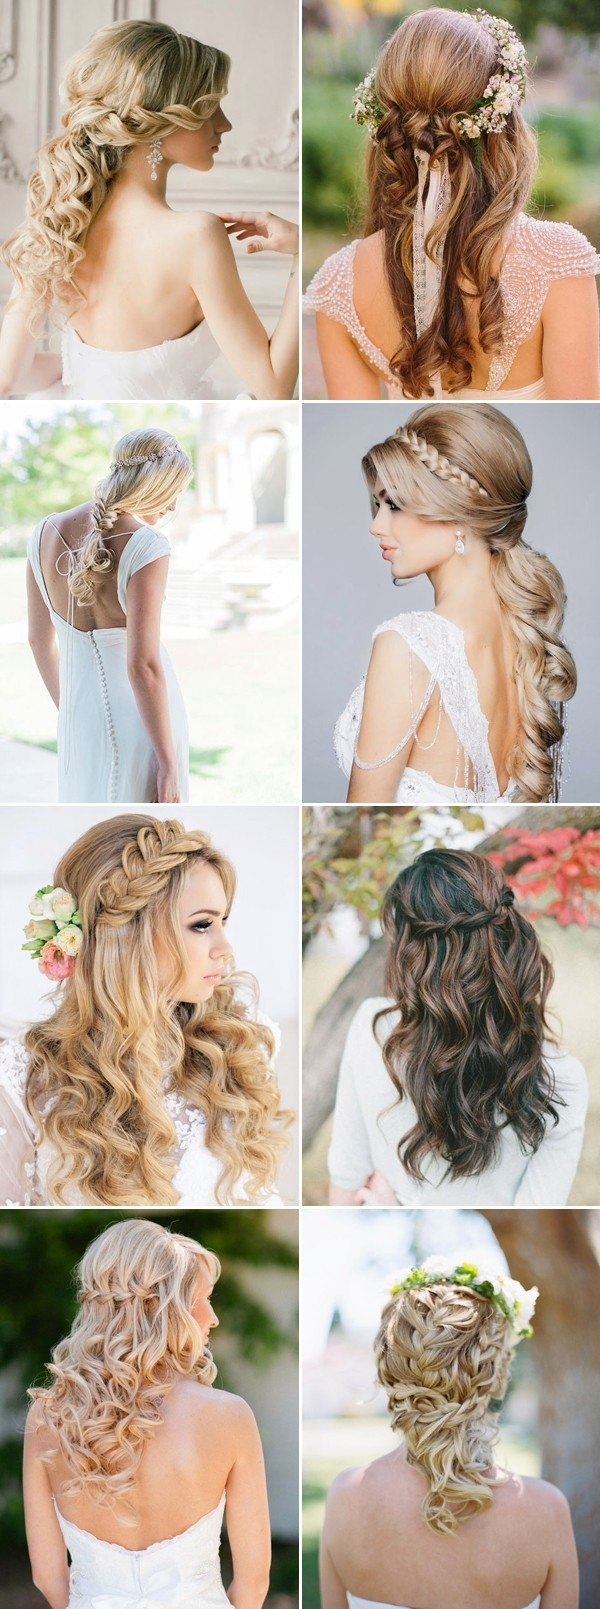 100+ Romantic Long Wedding Hairstyles 2018 – Curls, Half Up, Updos For Preferred Half Up Half Down With Veil Wedding Hairstyles (Gallery 3 of 15)